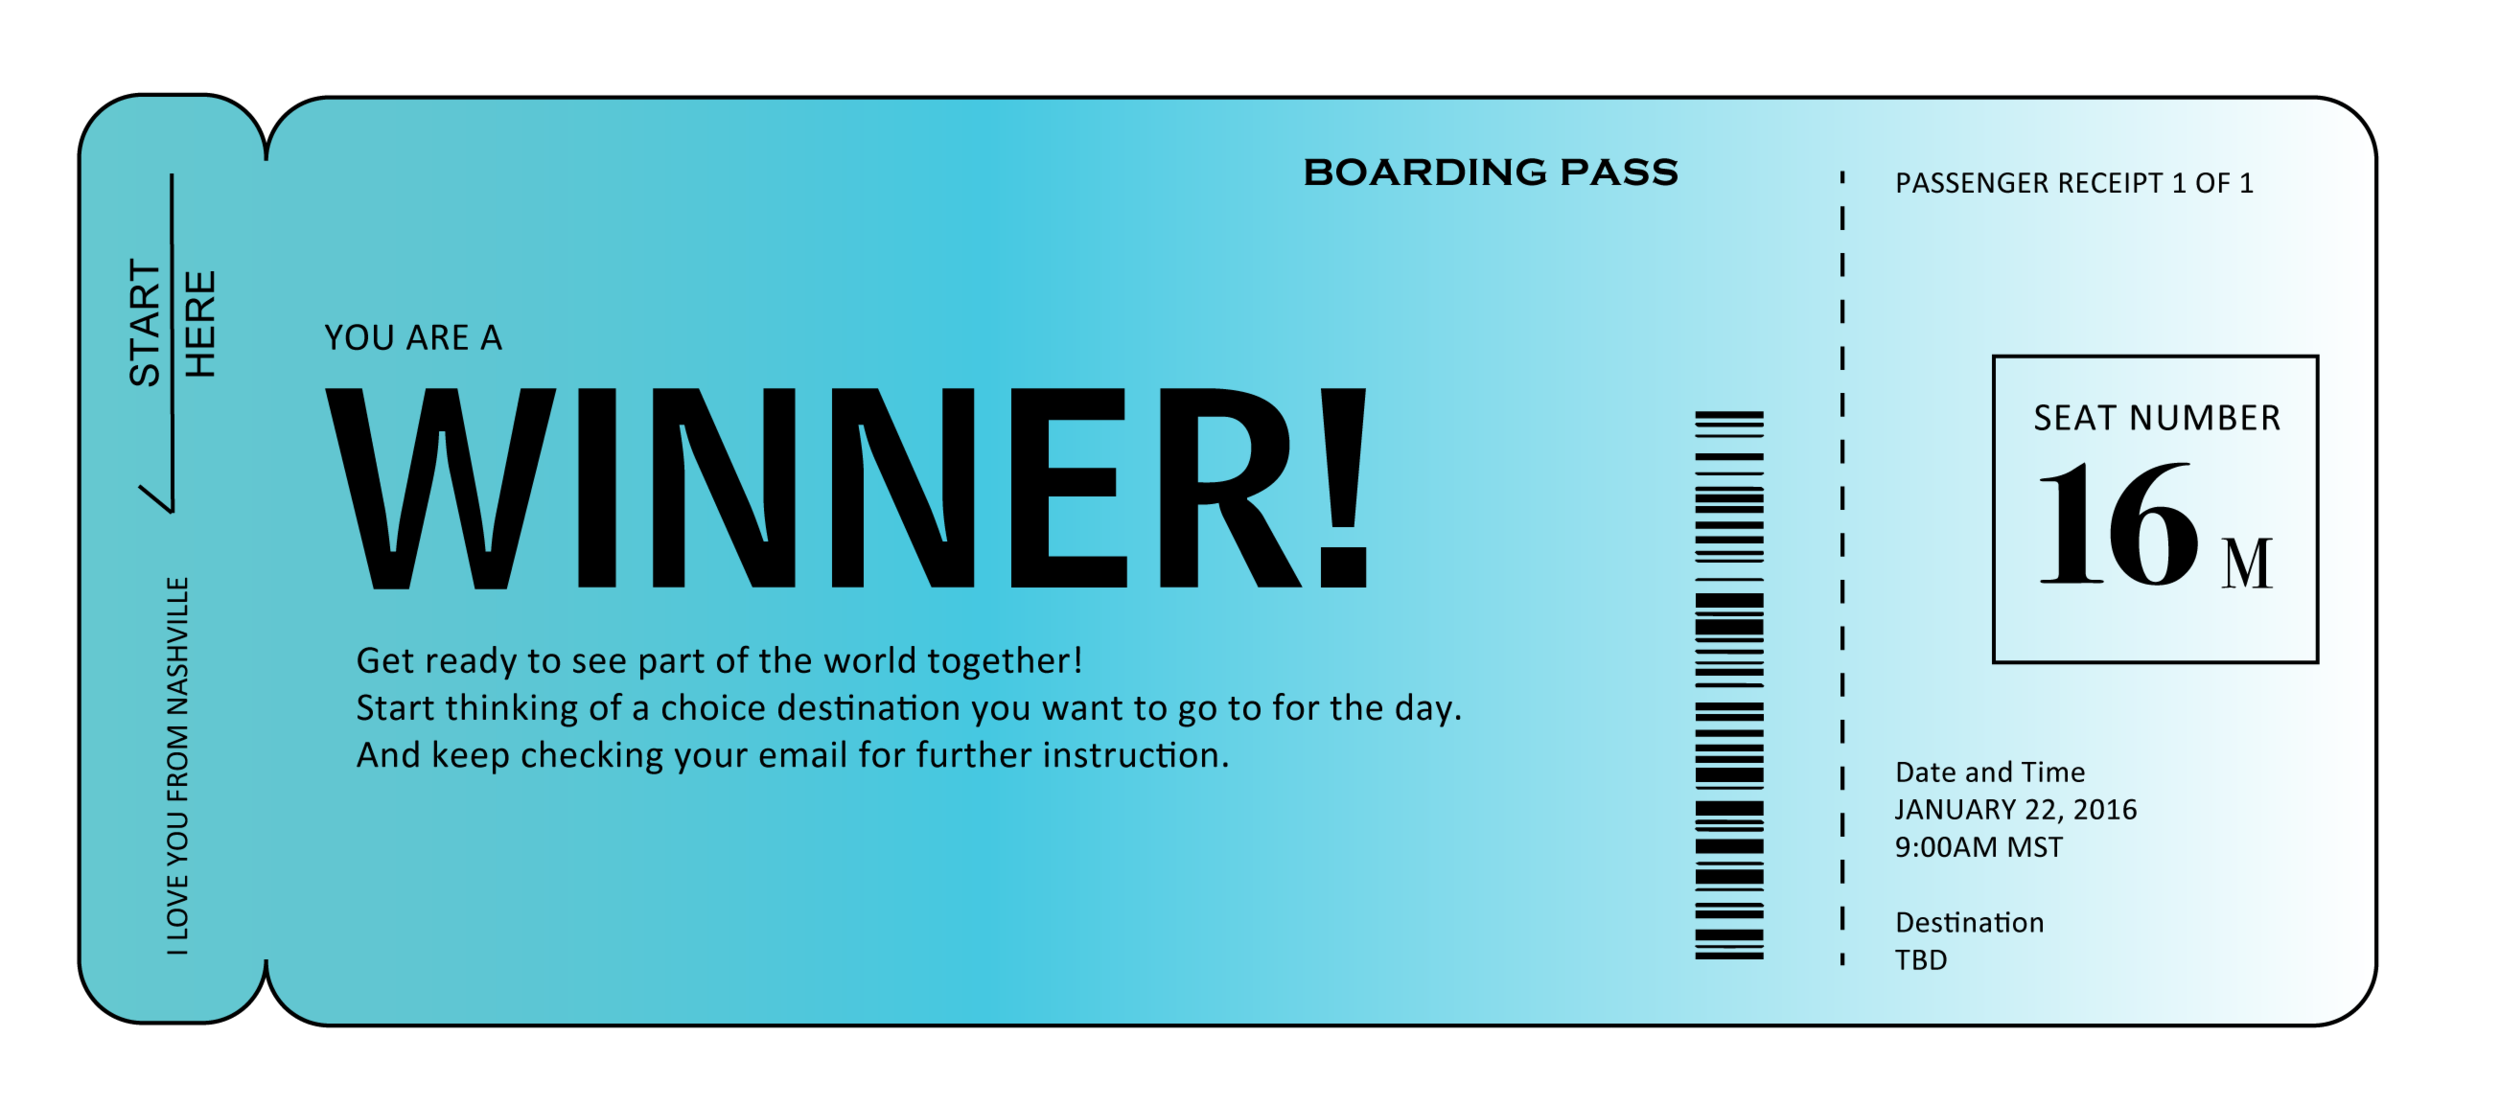 """""""Congrats! You're a winner! Get ready to see part of the world together! Start thinking of a choice destination you want to go to for the day. And keep checking your email for further instruction"""""""